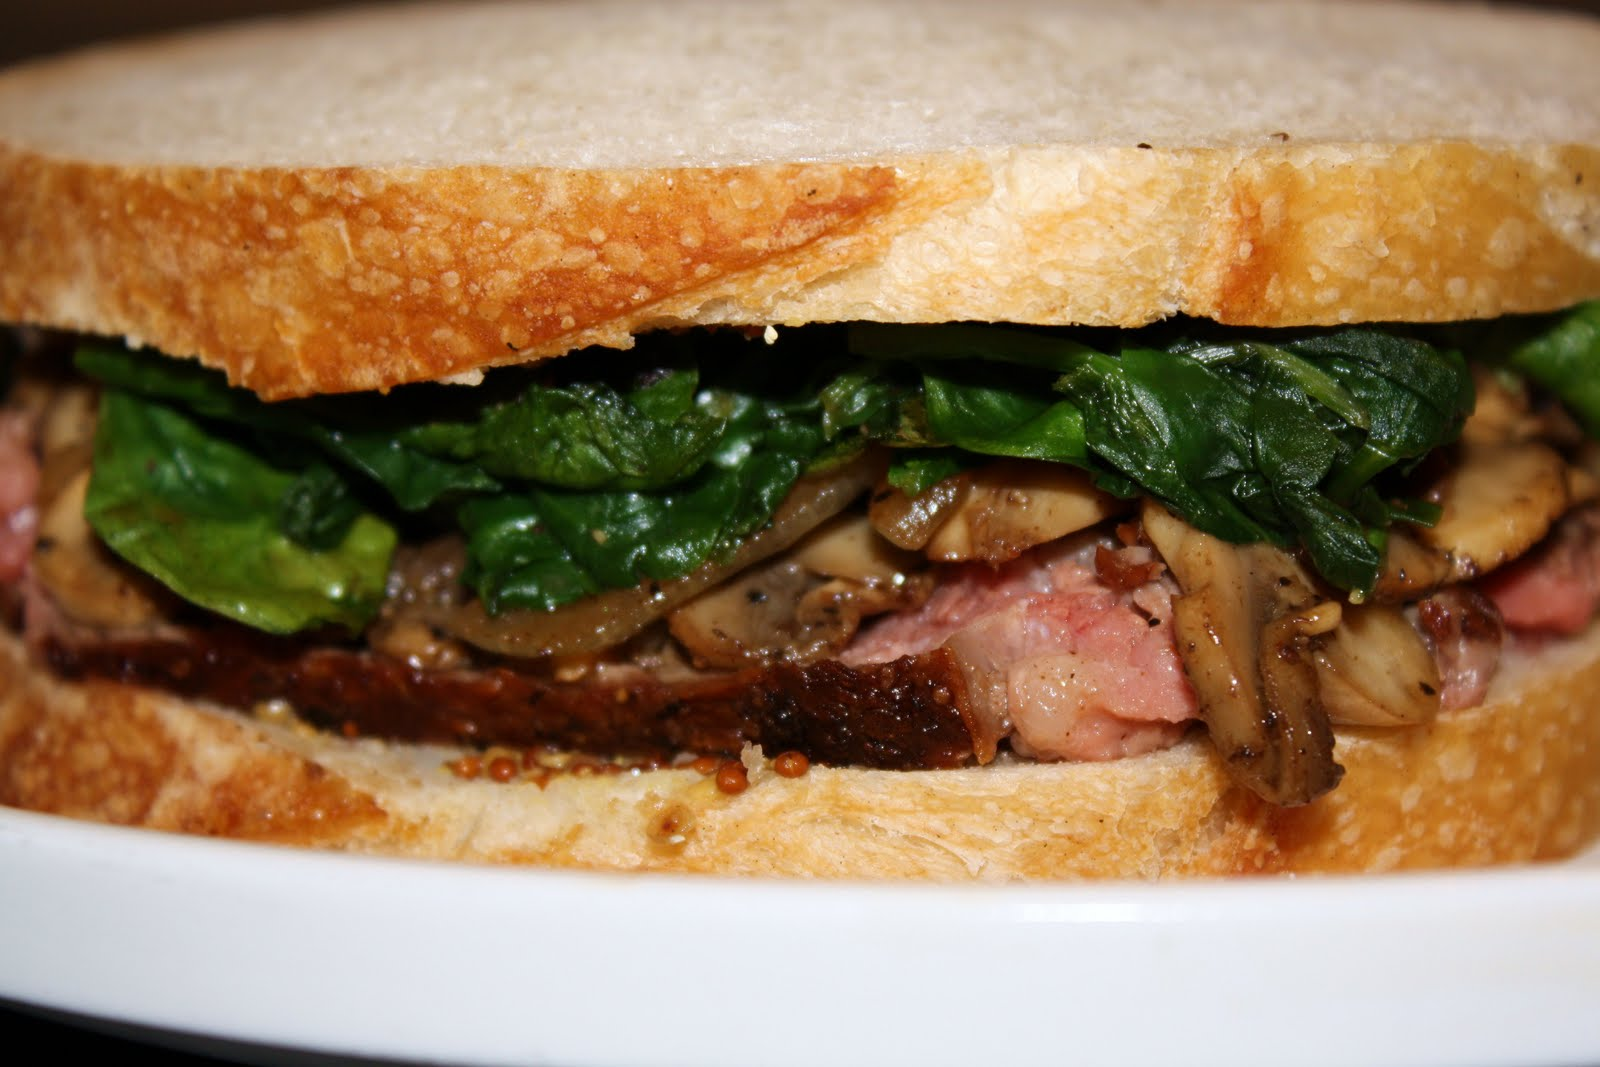 crema sandwiches hickory smoked flank steak sandwiches coupe coupe mm ...